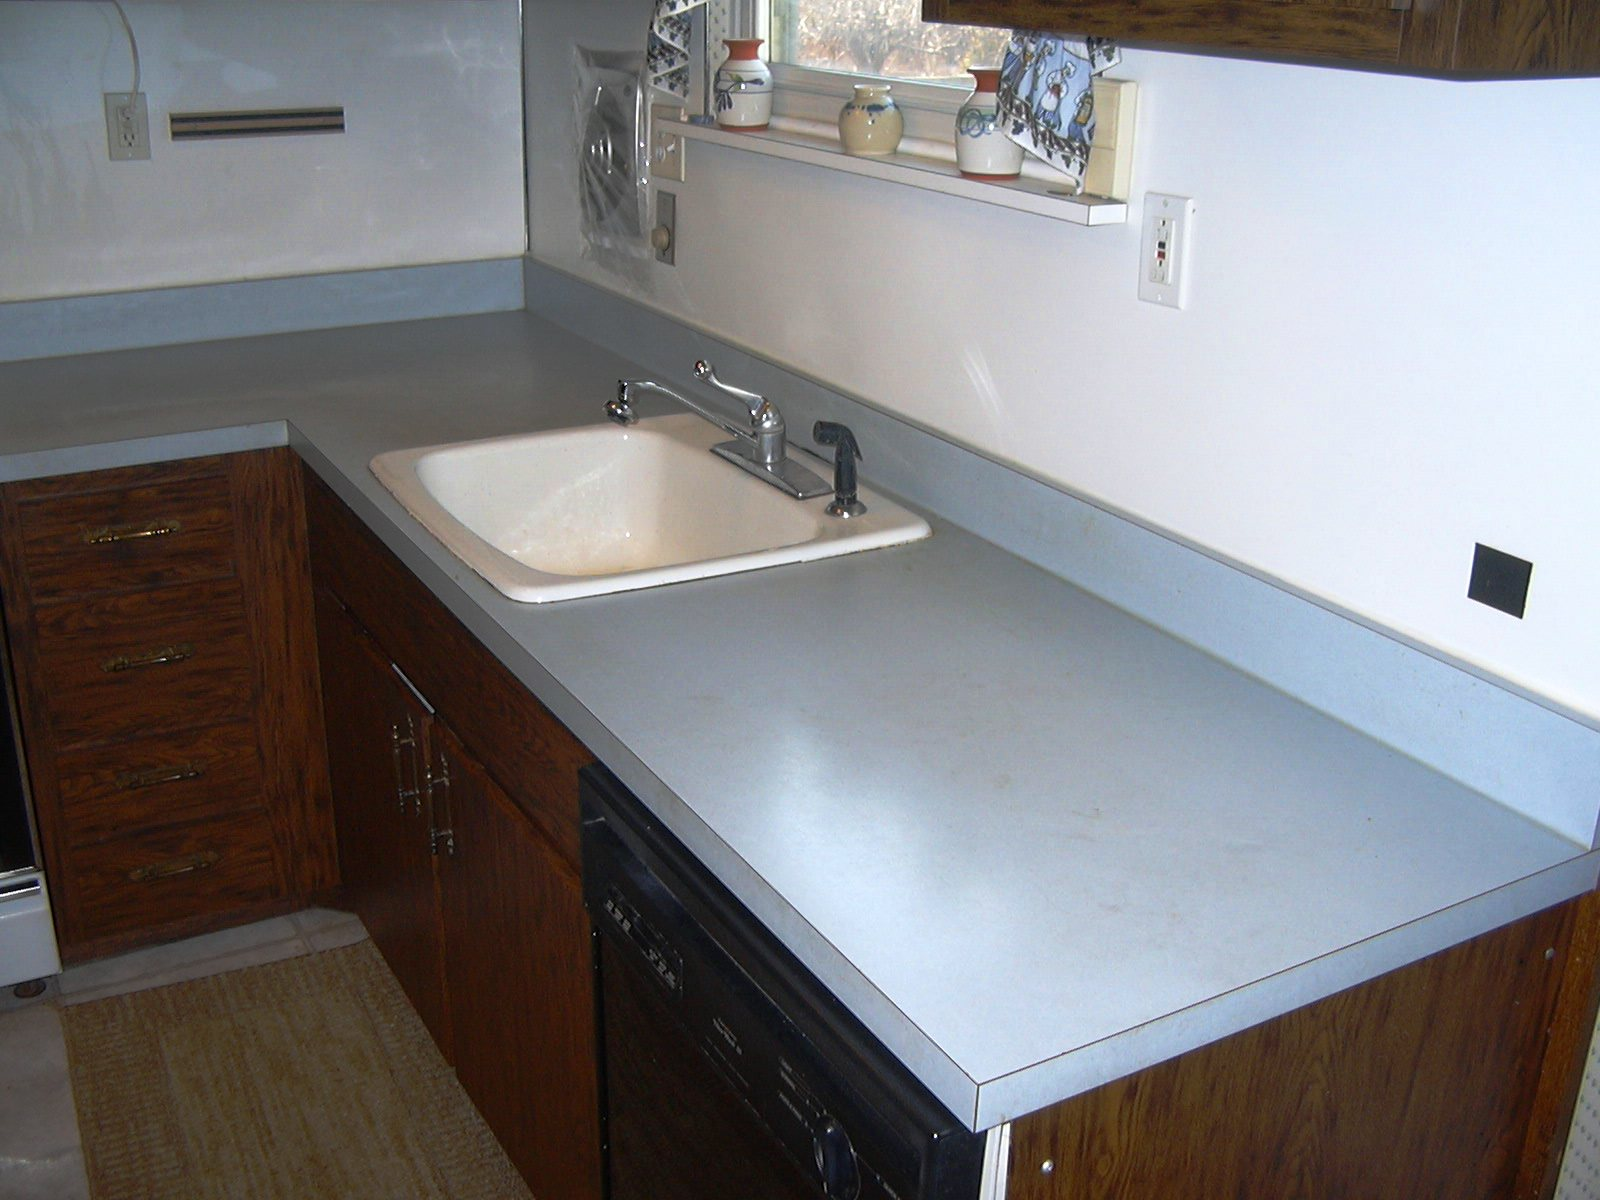 Countertop Coating : ... Experience with the Giani Granite Countertop Paint Kit?February 2012